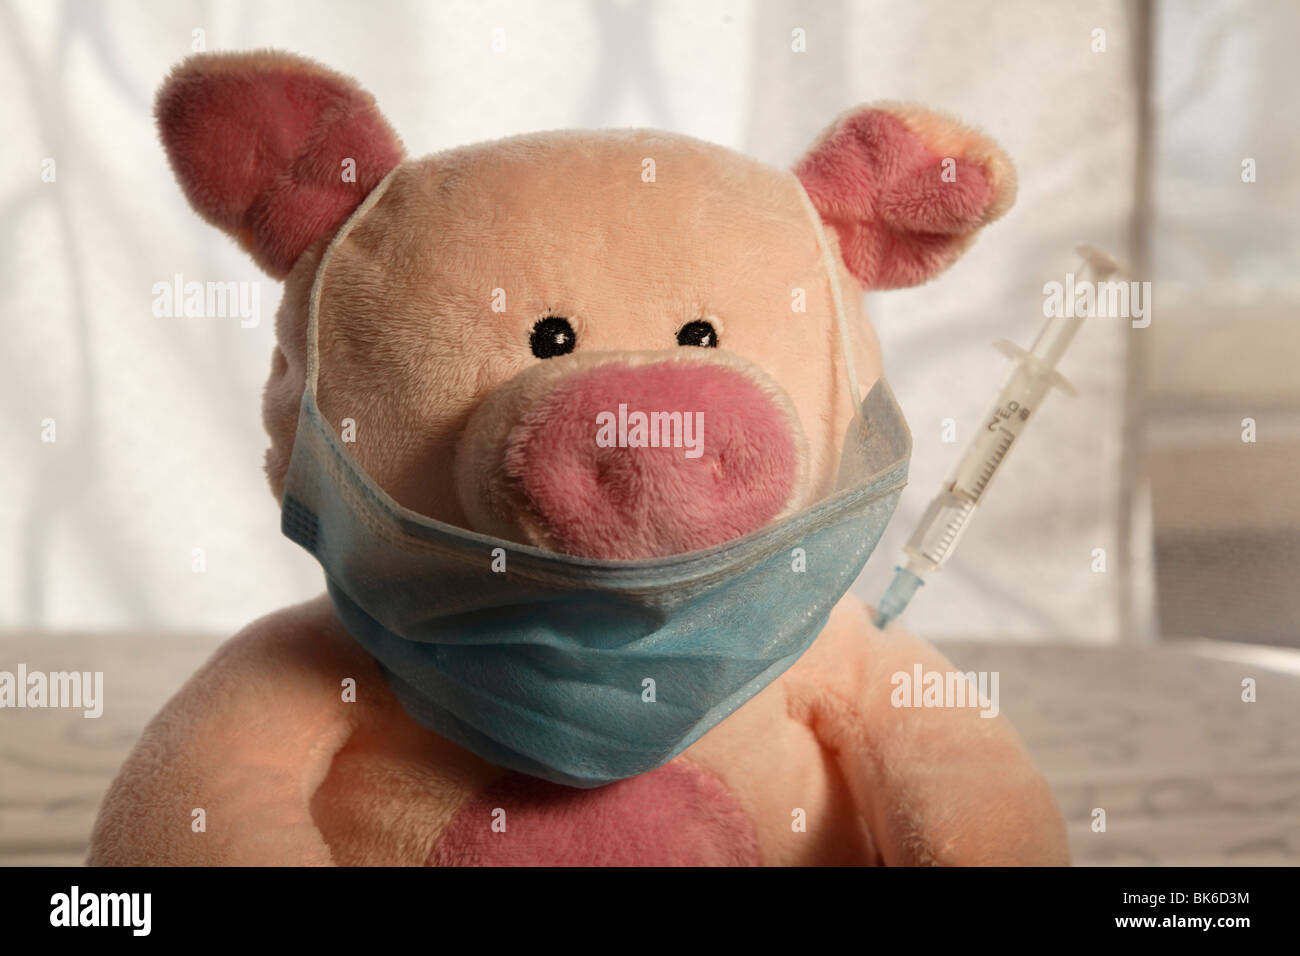 Toy pig with a syringe in the shoulder, head shot. - Stock Image